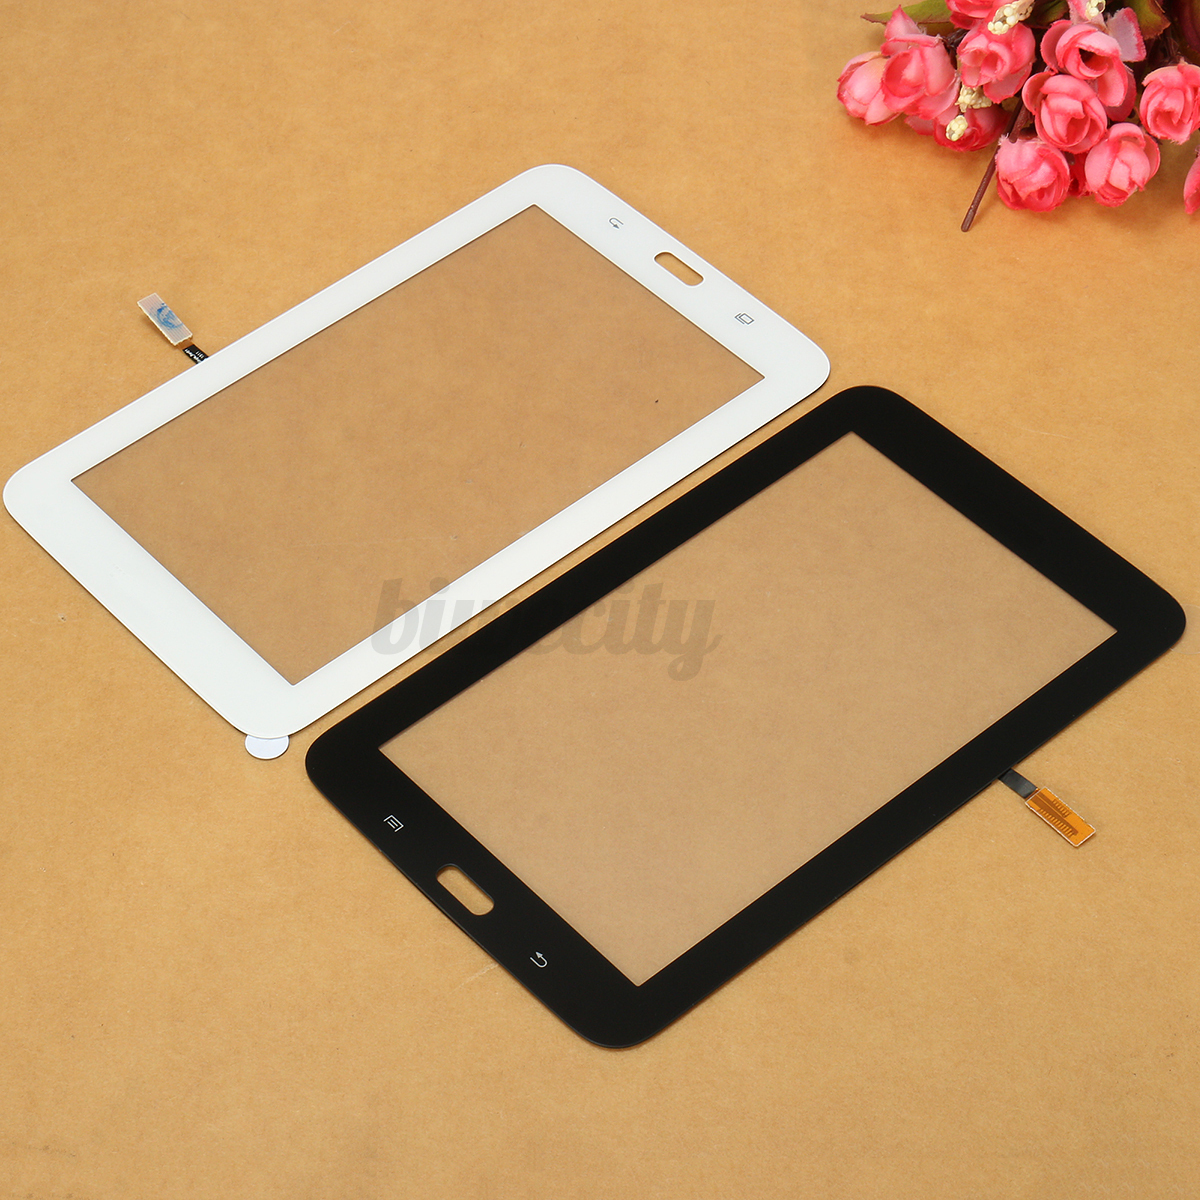 21-Type-Touch-Screen-Digitizer-Glass-Lens-Replacement-Part-Tools-For-Samsung